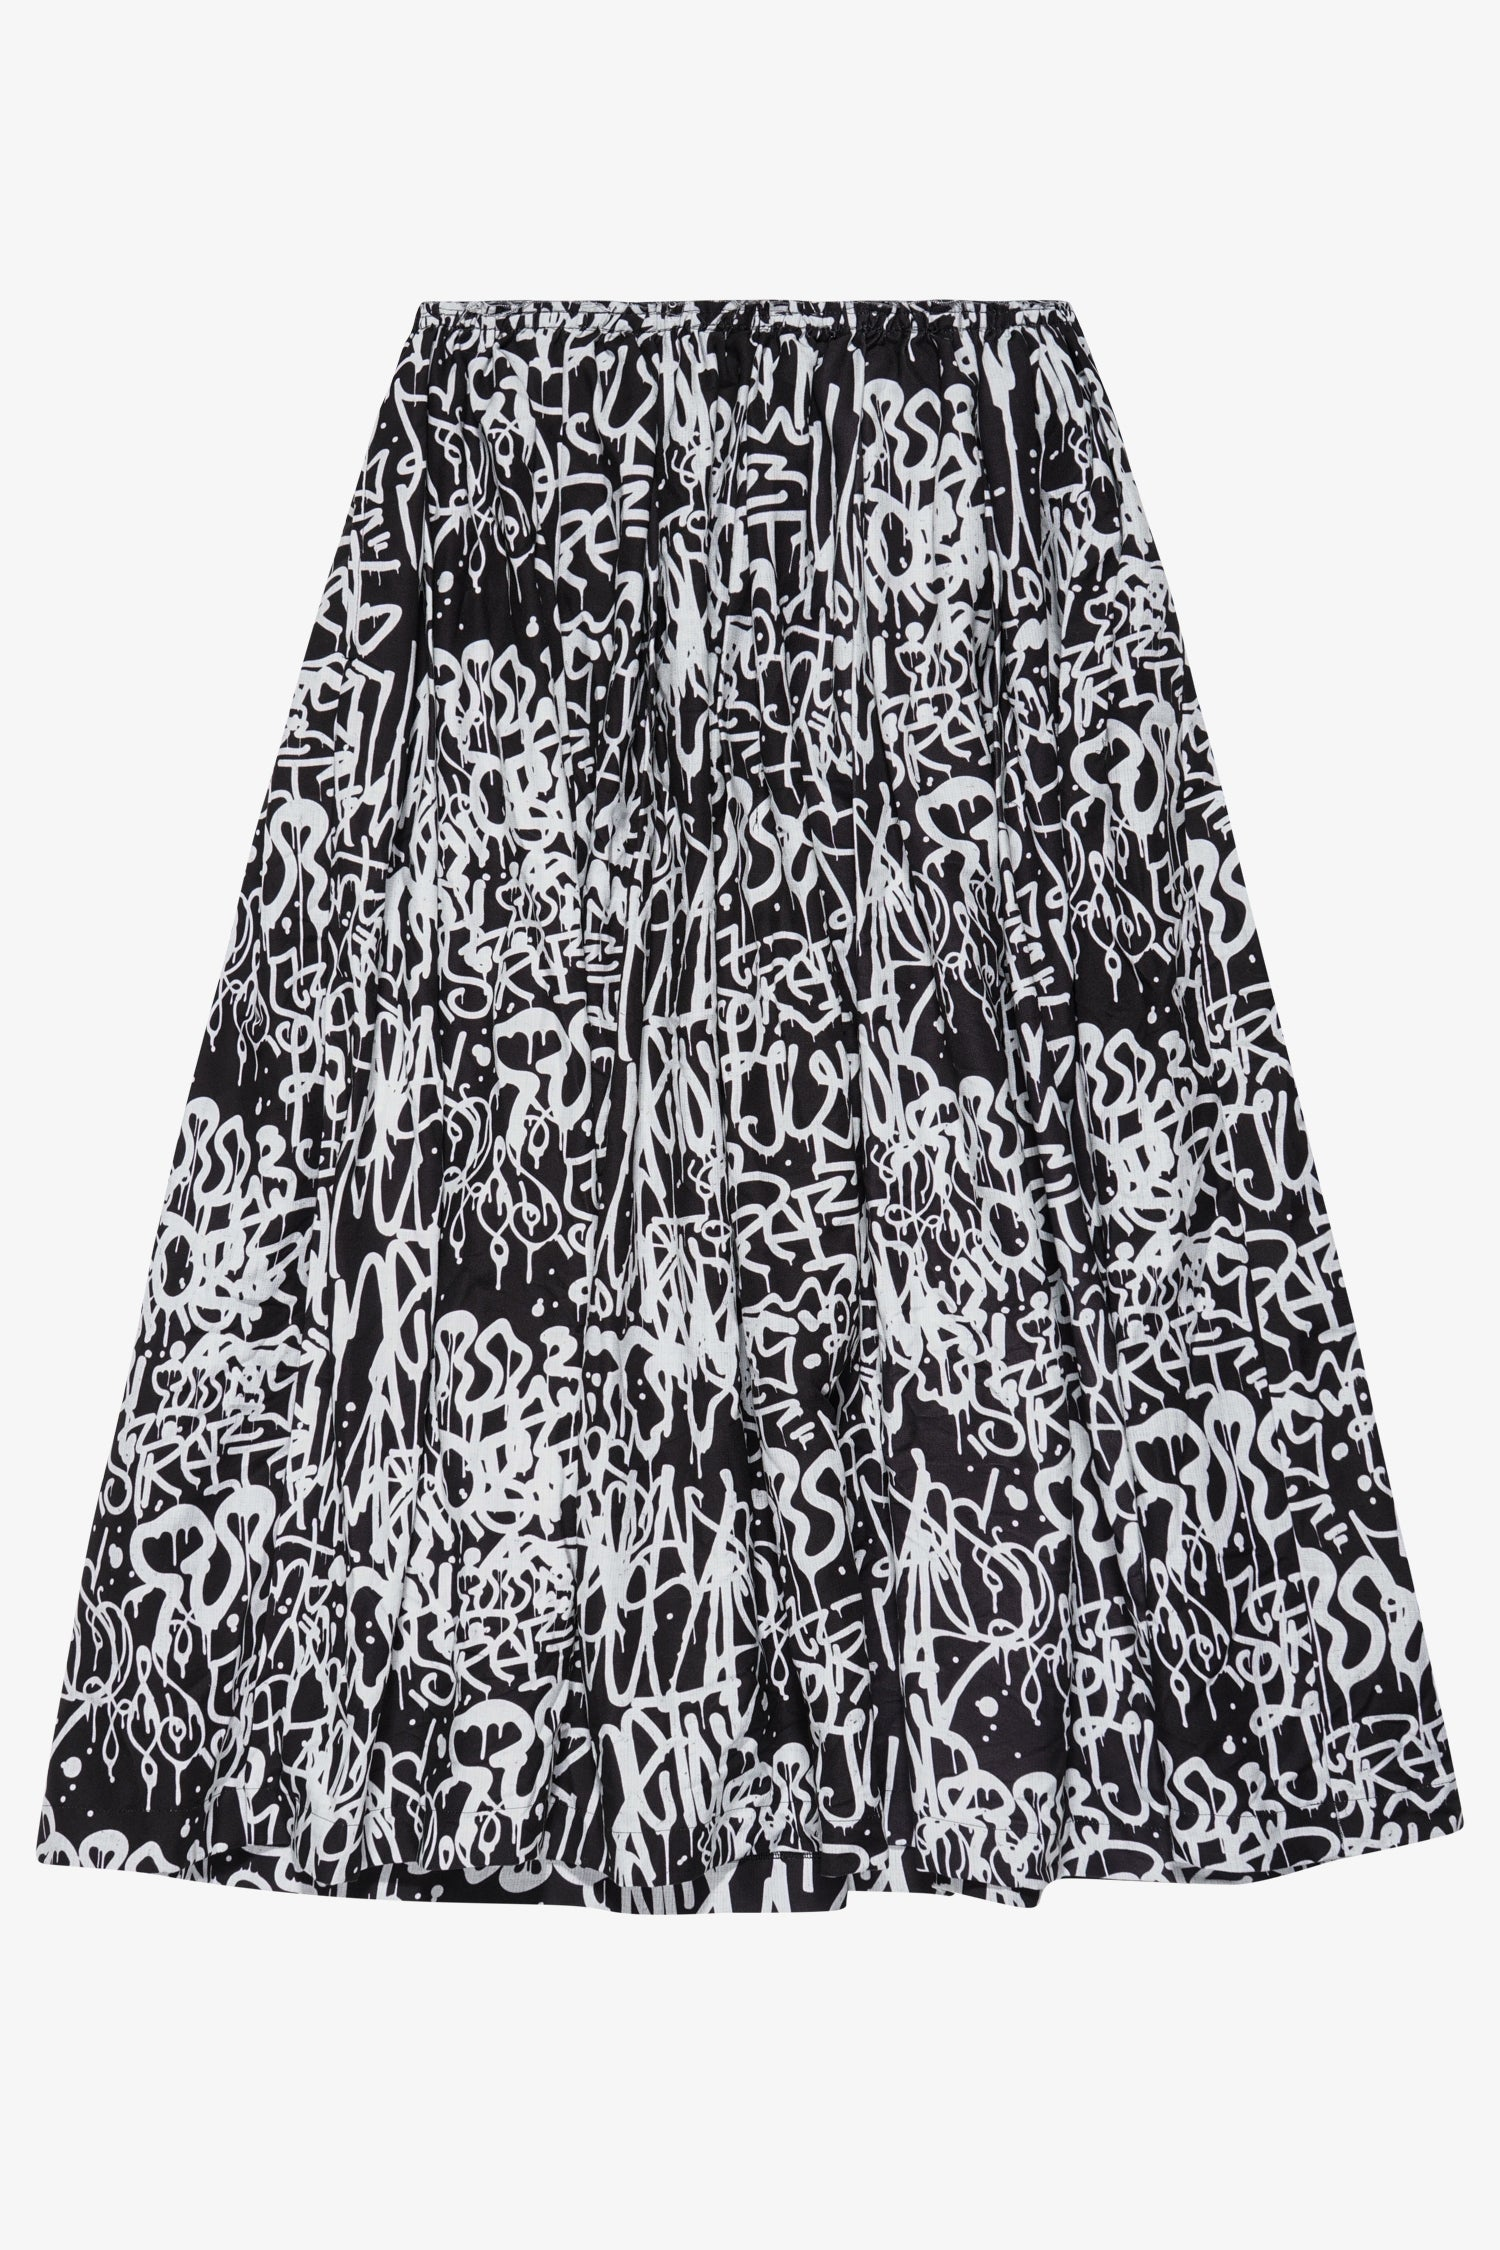 Graffiti Print High Waist Skirt